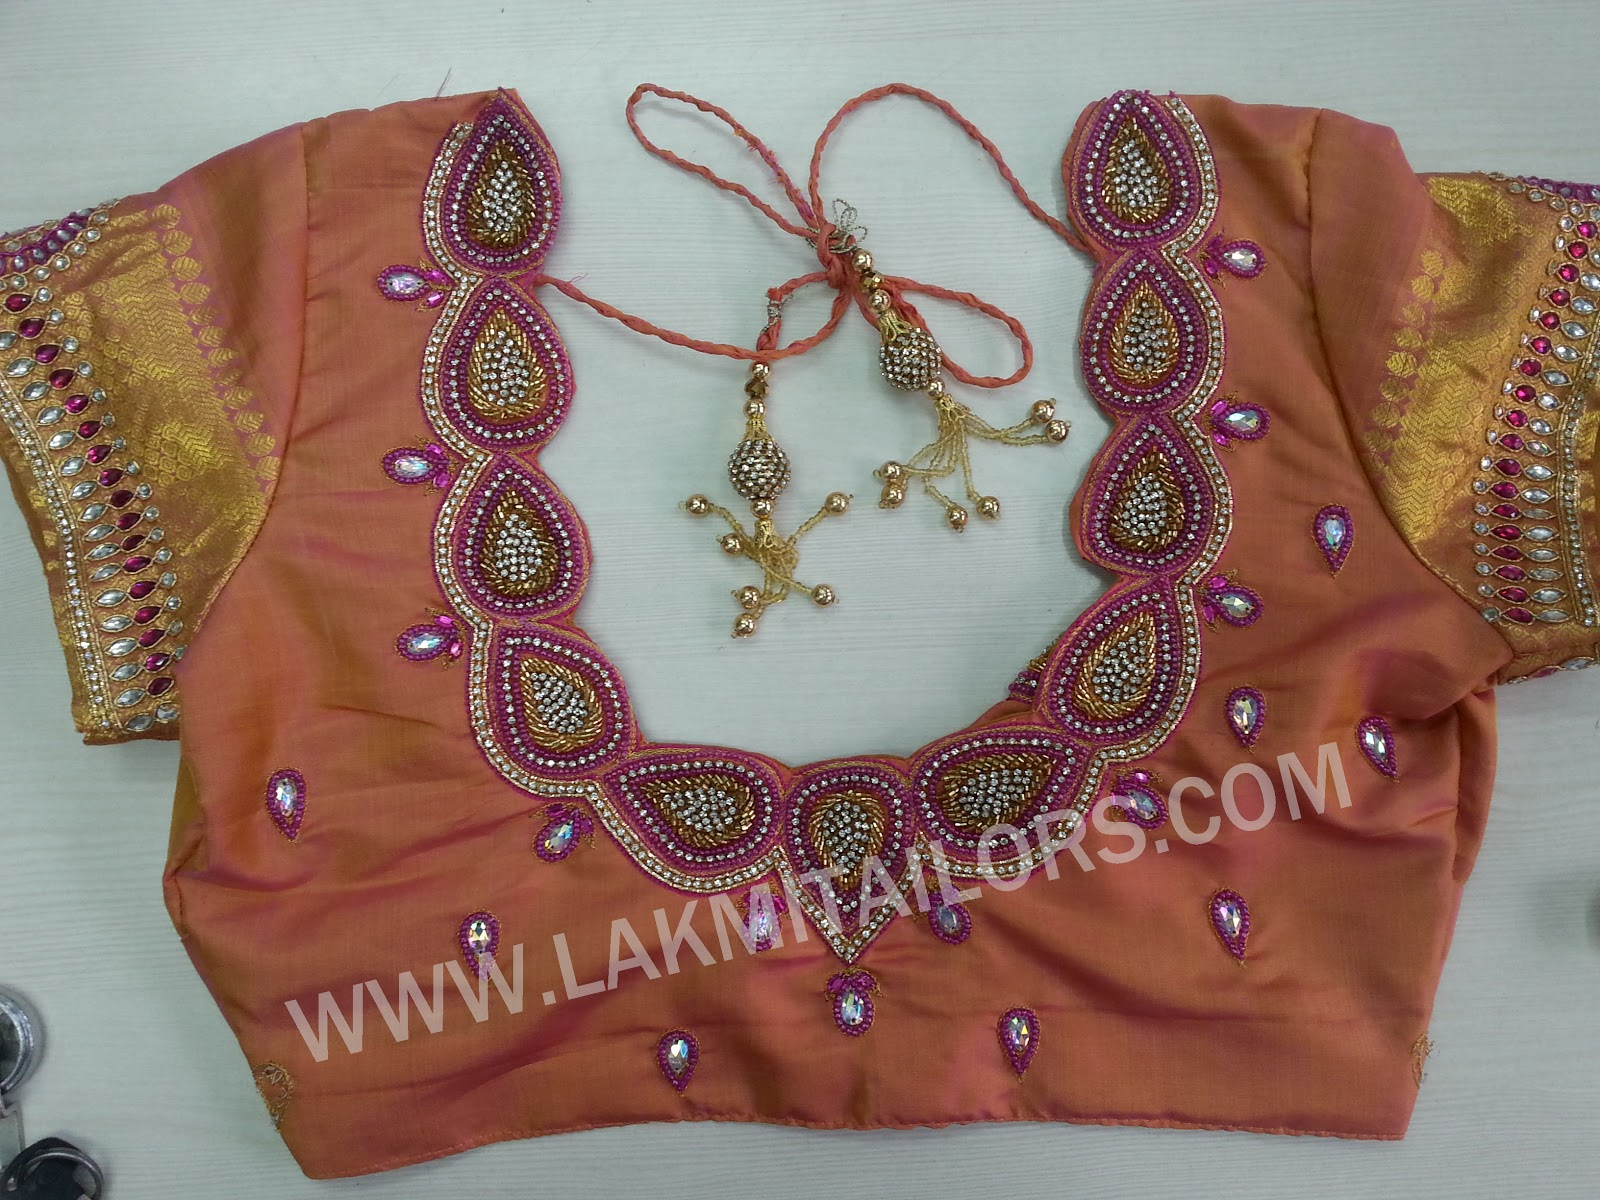 Wedding blouse hand embroidery designs from lakmi tailors ...